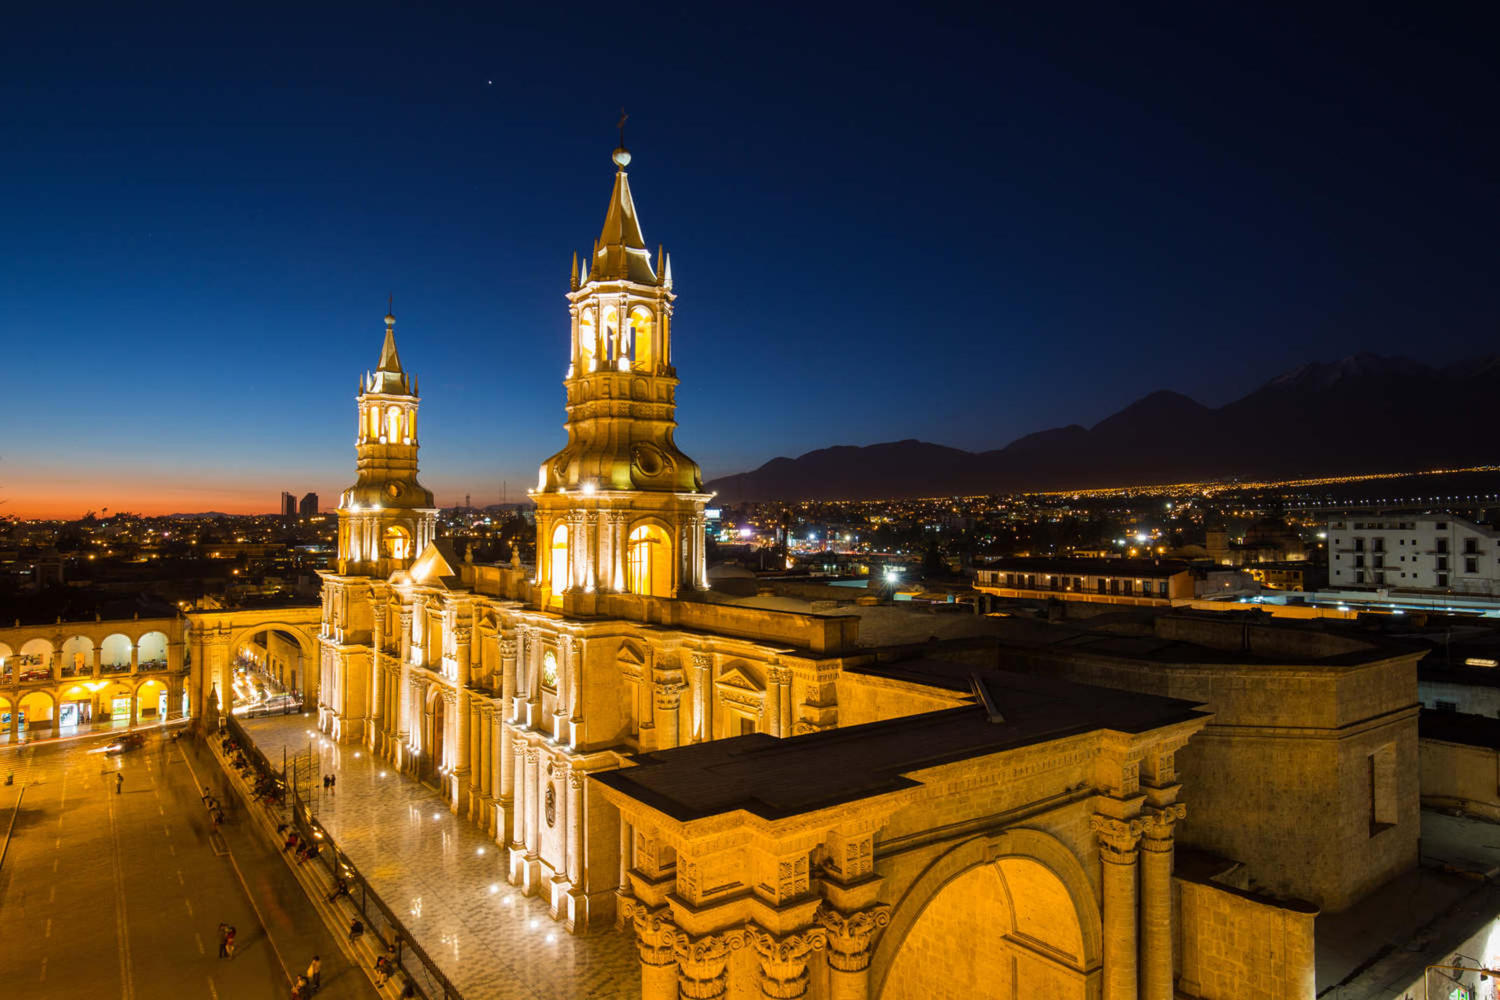 Plaza de armas in Arequipa at night